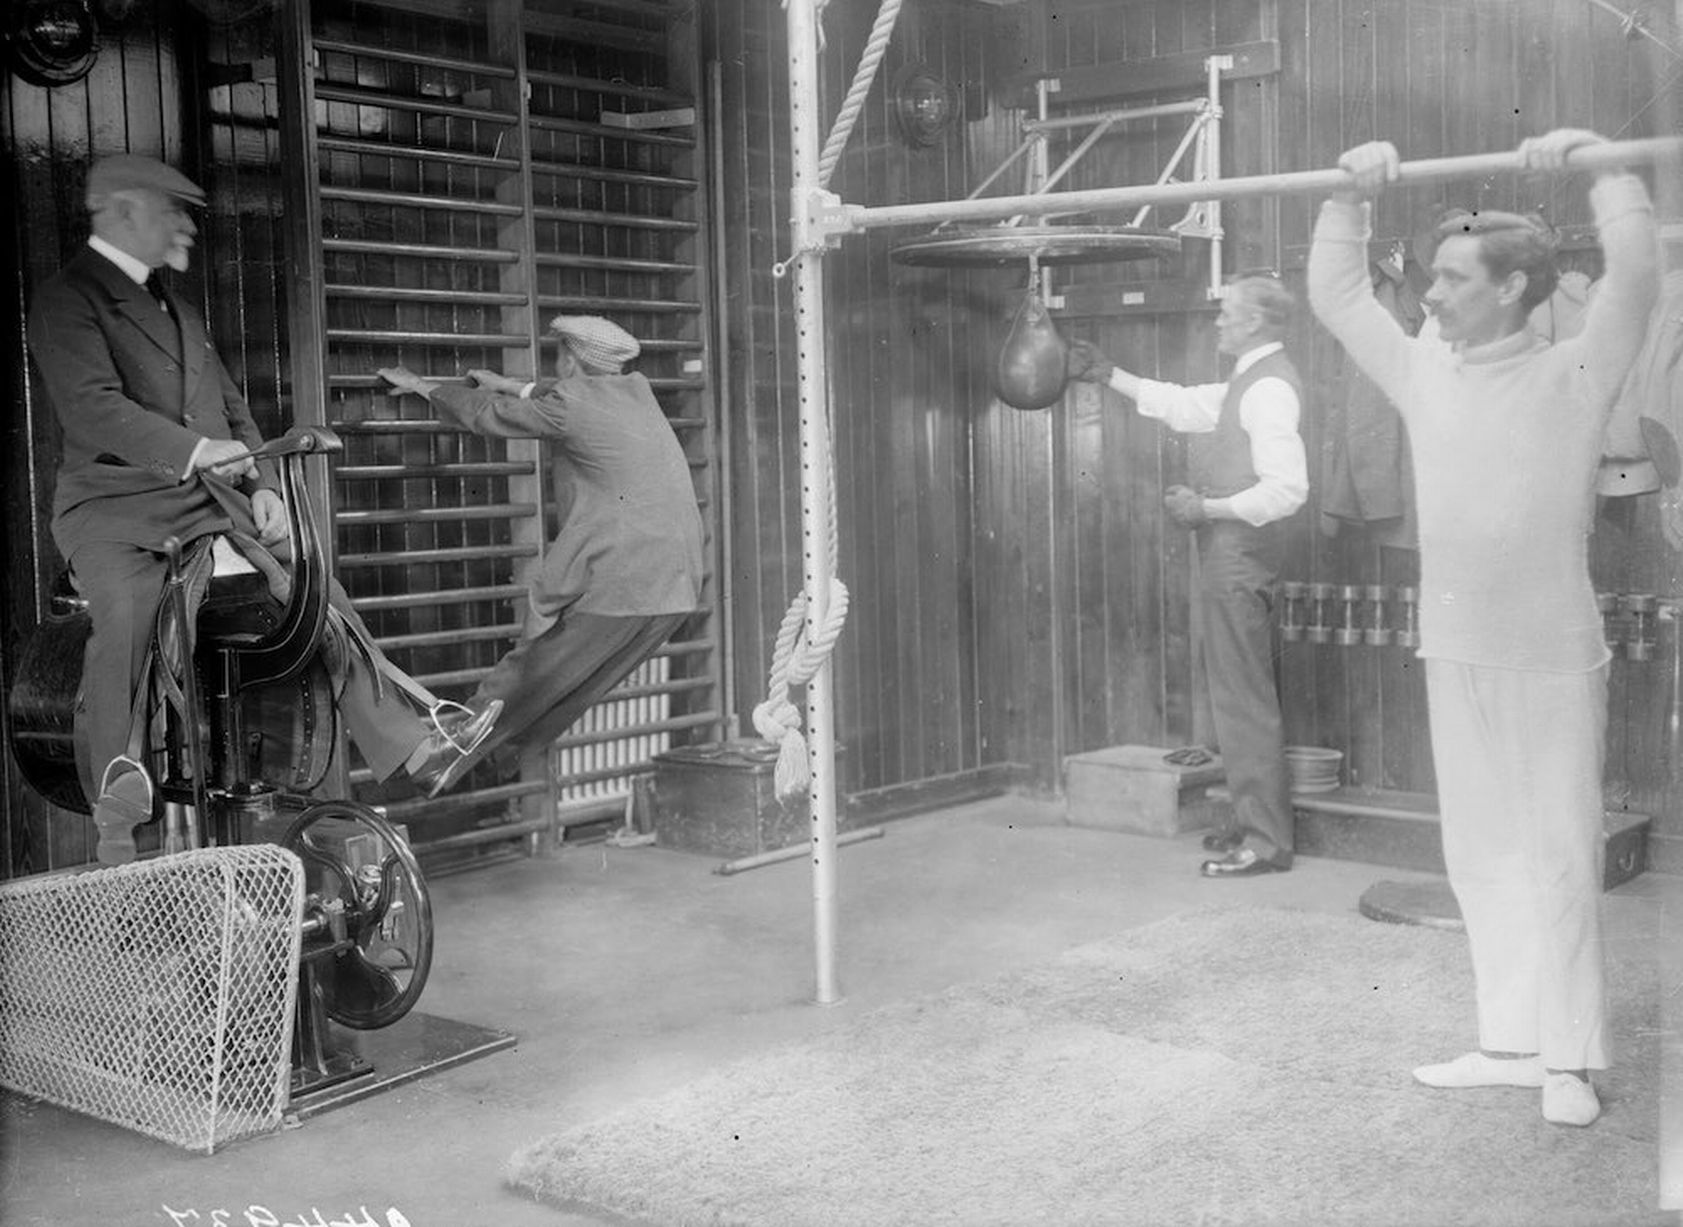 Passengers working out in the gym of the Cunard cruise liner Franconia, which was destroyed by a U-boat in 1916.